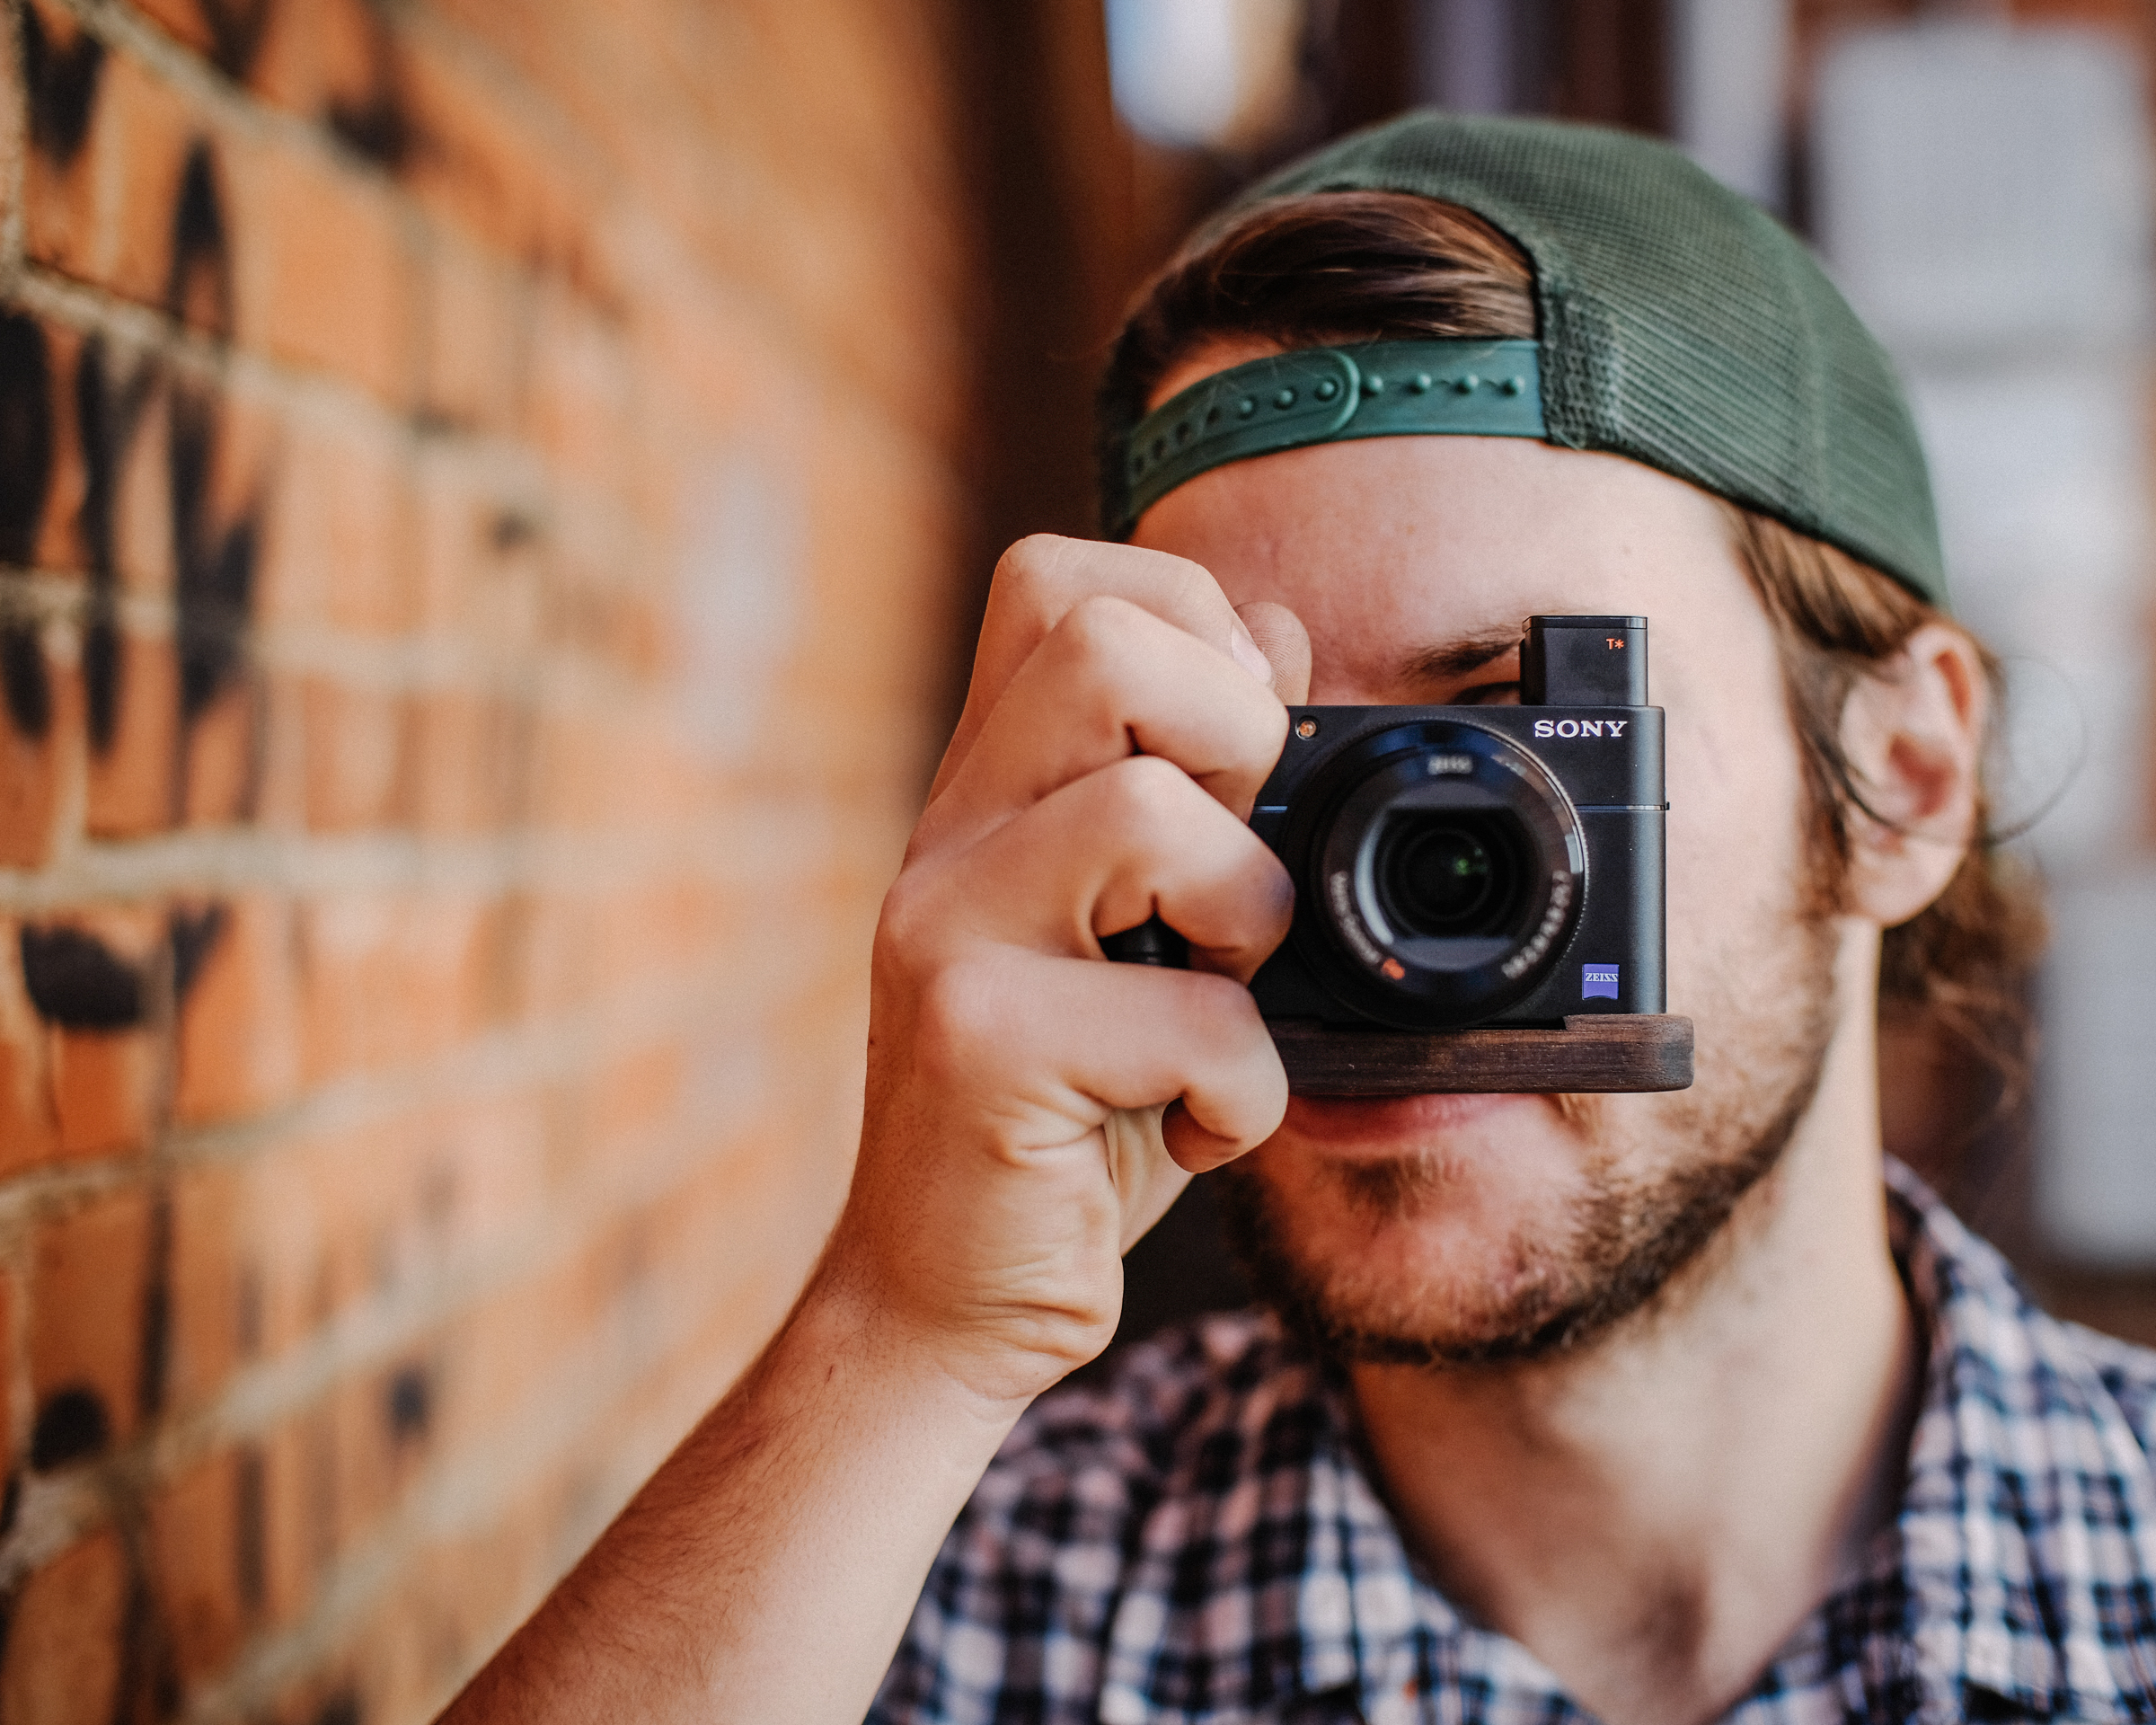 The vertical grip allows you to easily hold the camera with one hand confidently.